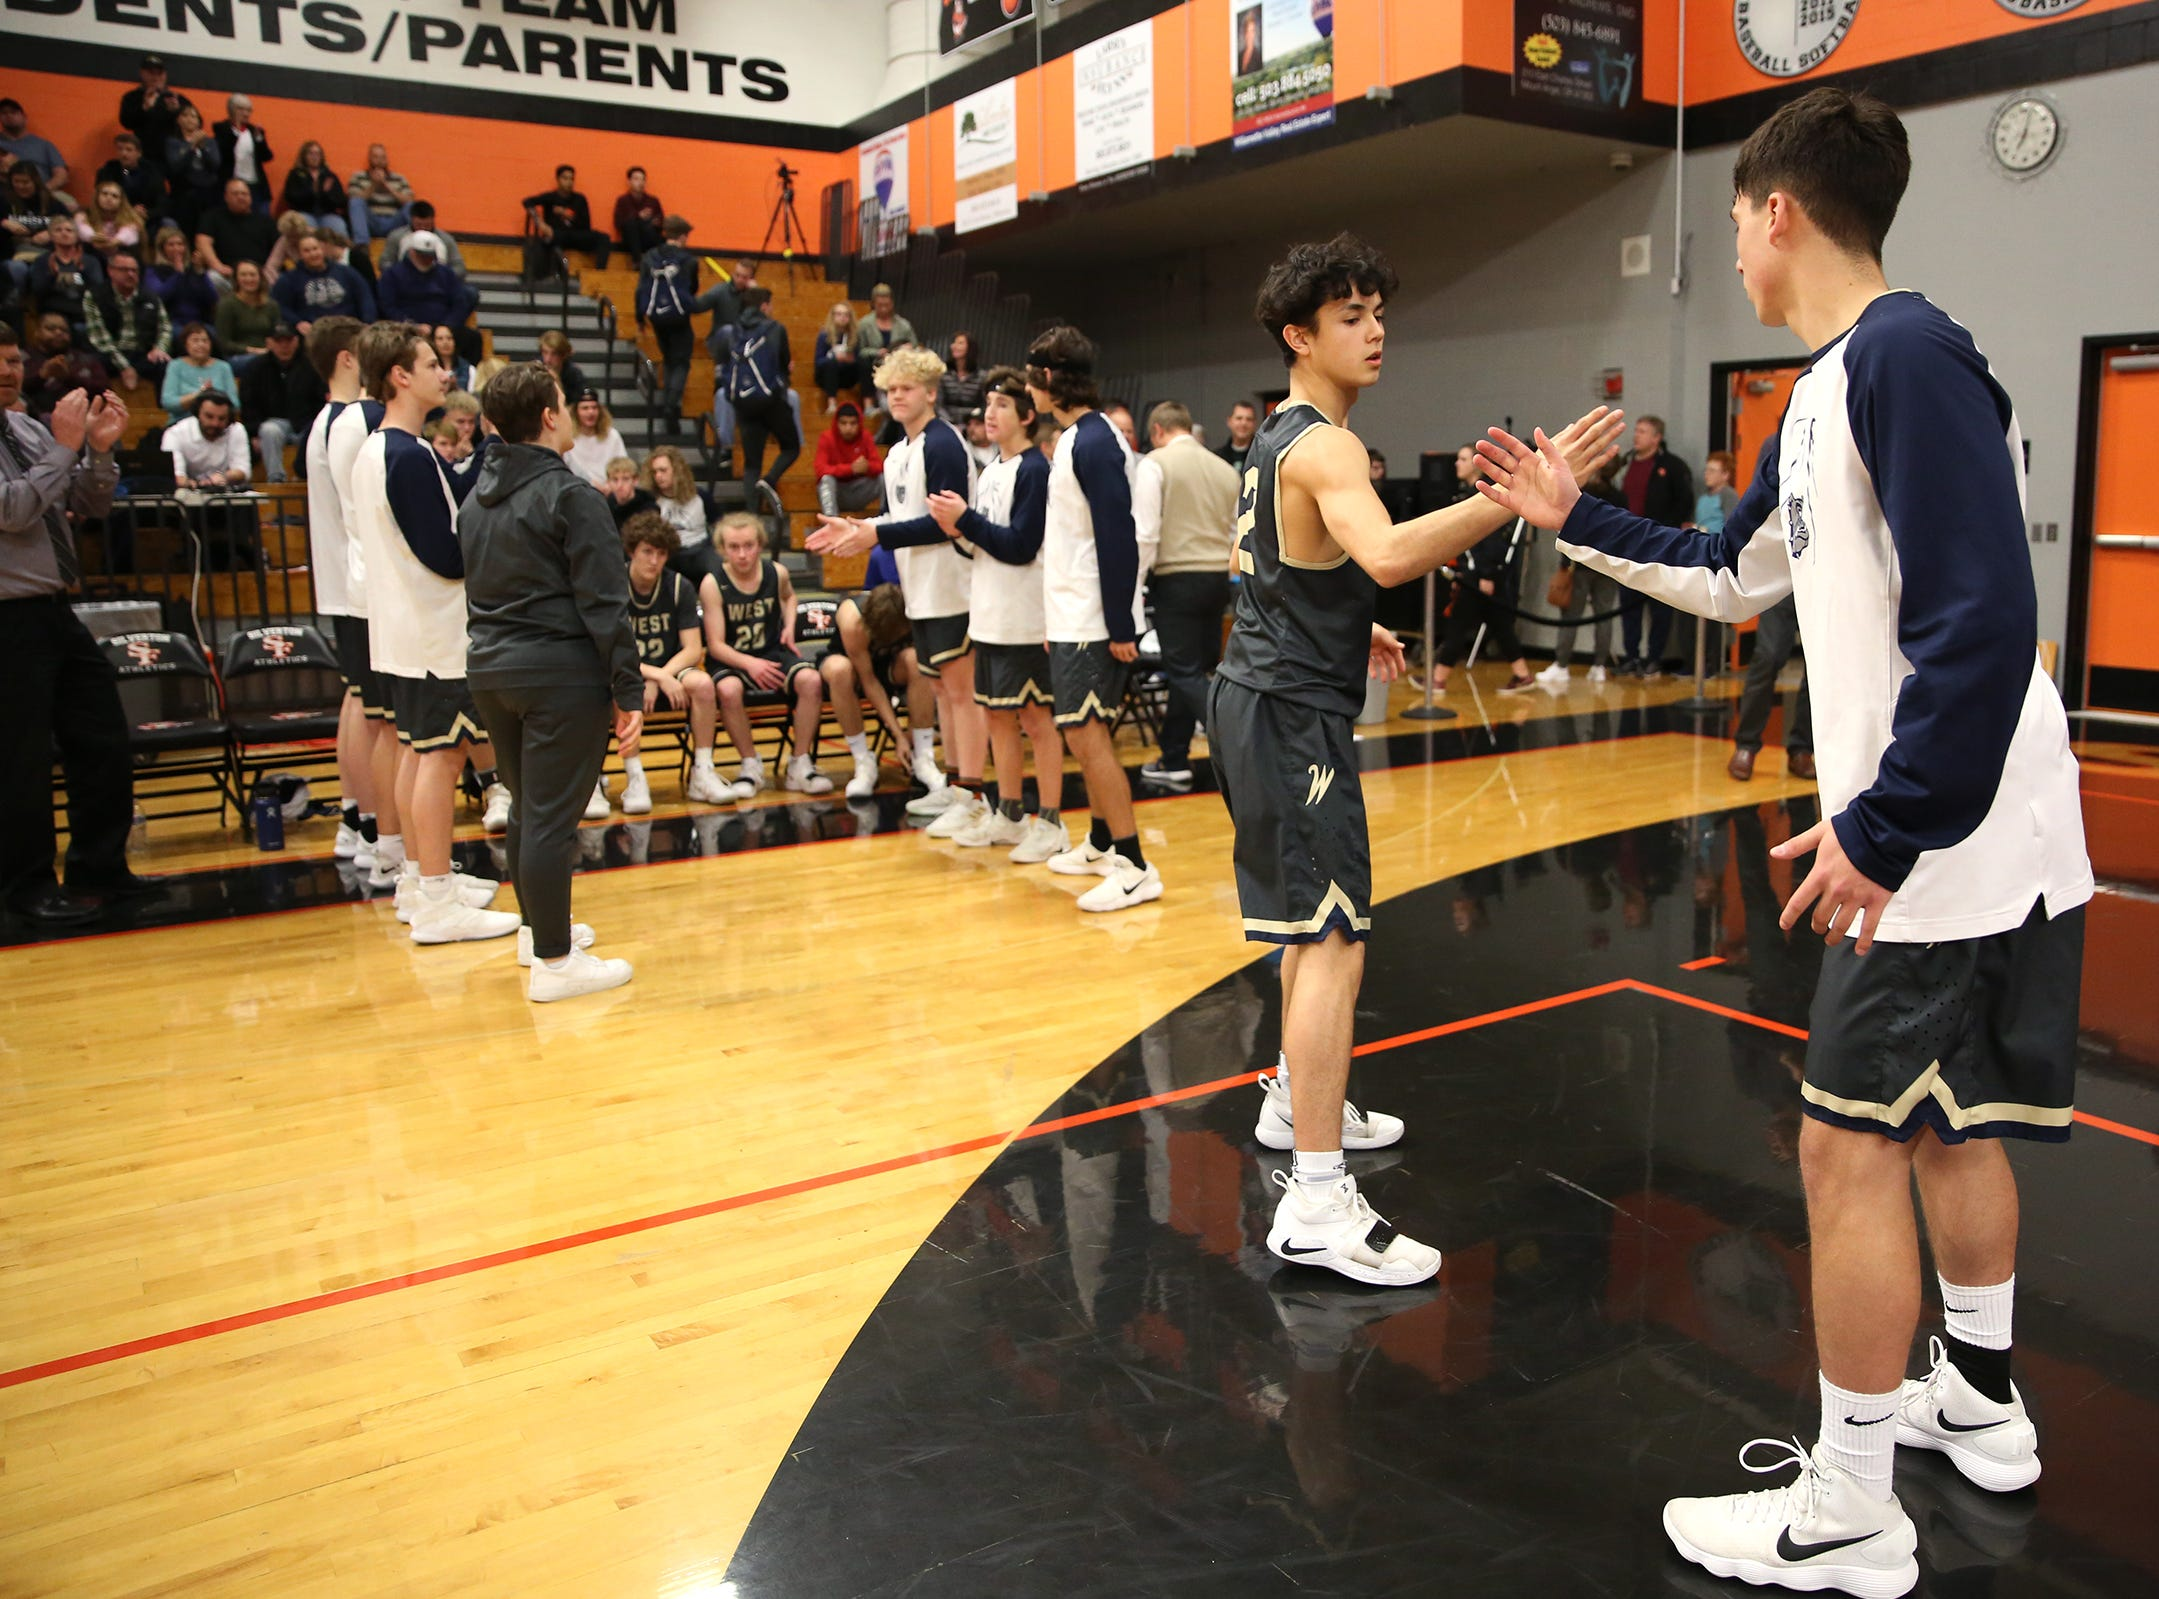 West Albany's Koby Ruiz (2) is introduced during the West Albany vs. Silverton High School boys basketball game in Silverton on Friday, Jan. 25, 2019.